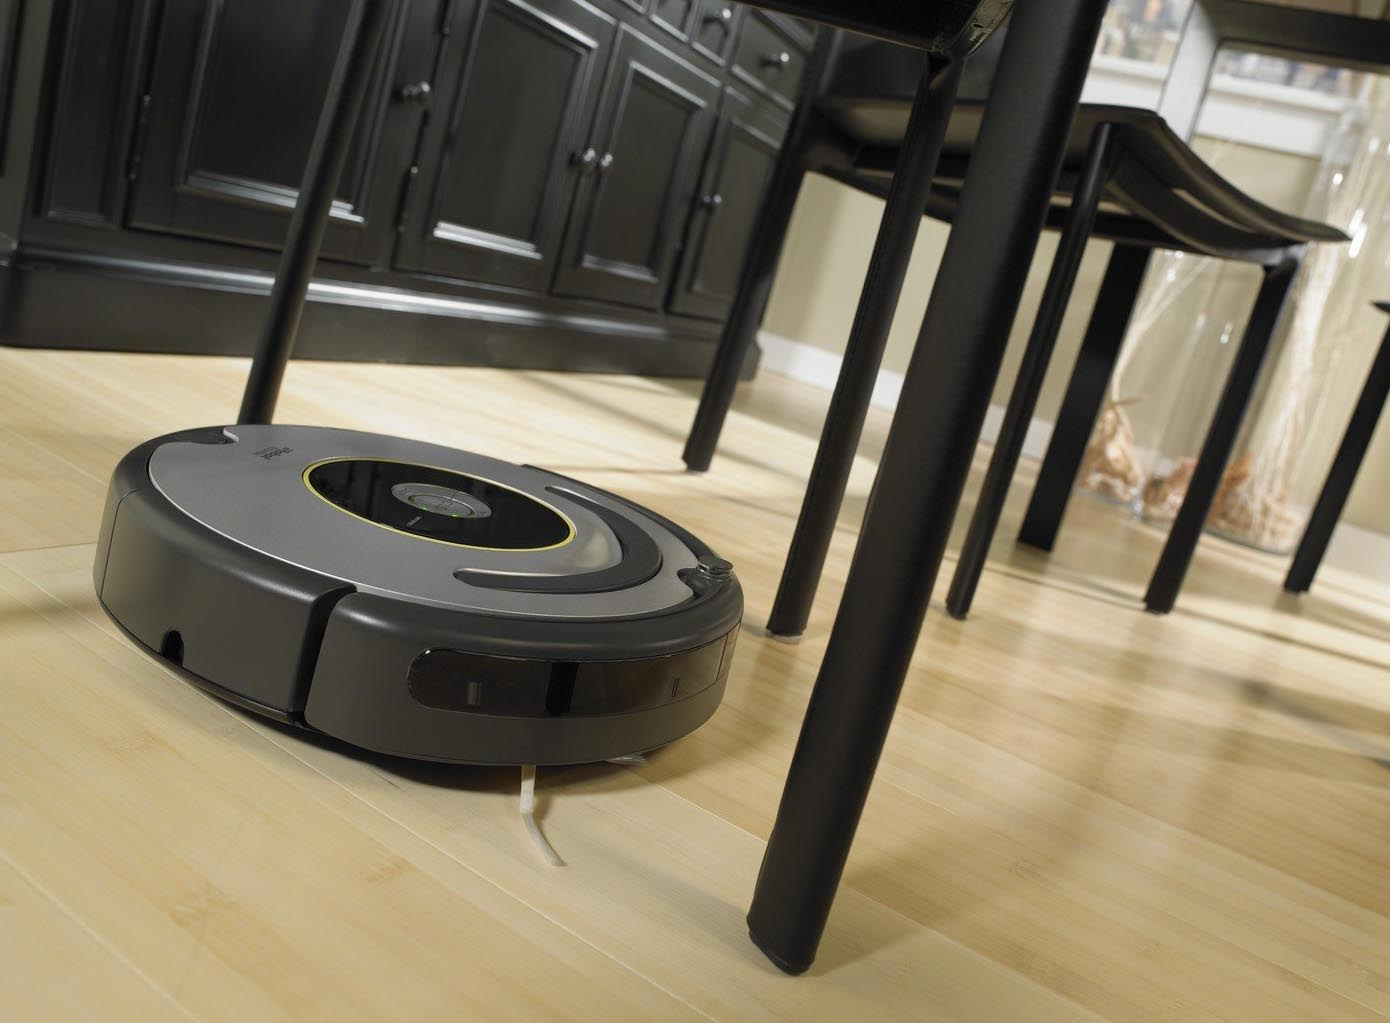 irobot roomba 615 opinioni e prezzi compra online e risparmia. Black Bedroom Furniture Sets. Home Design Ideas